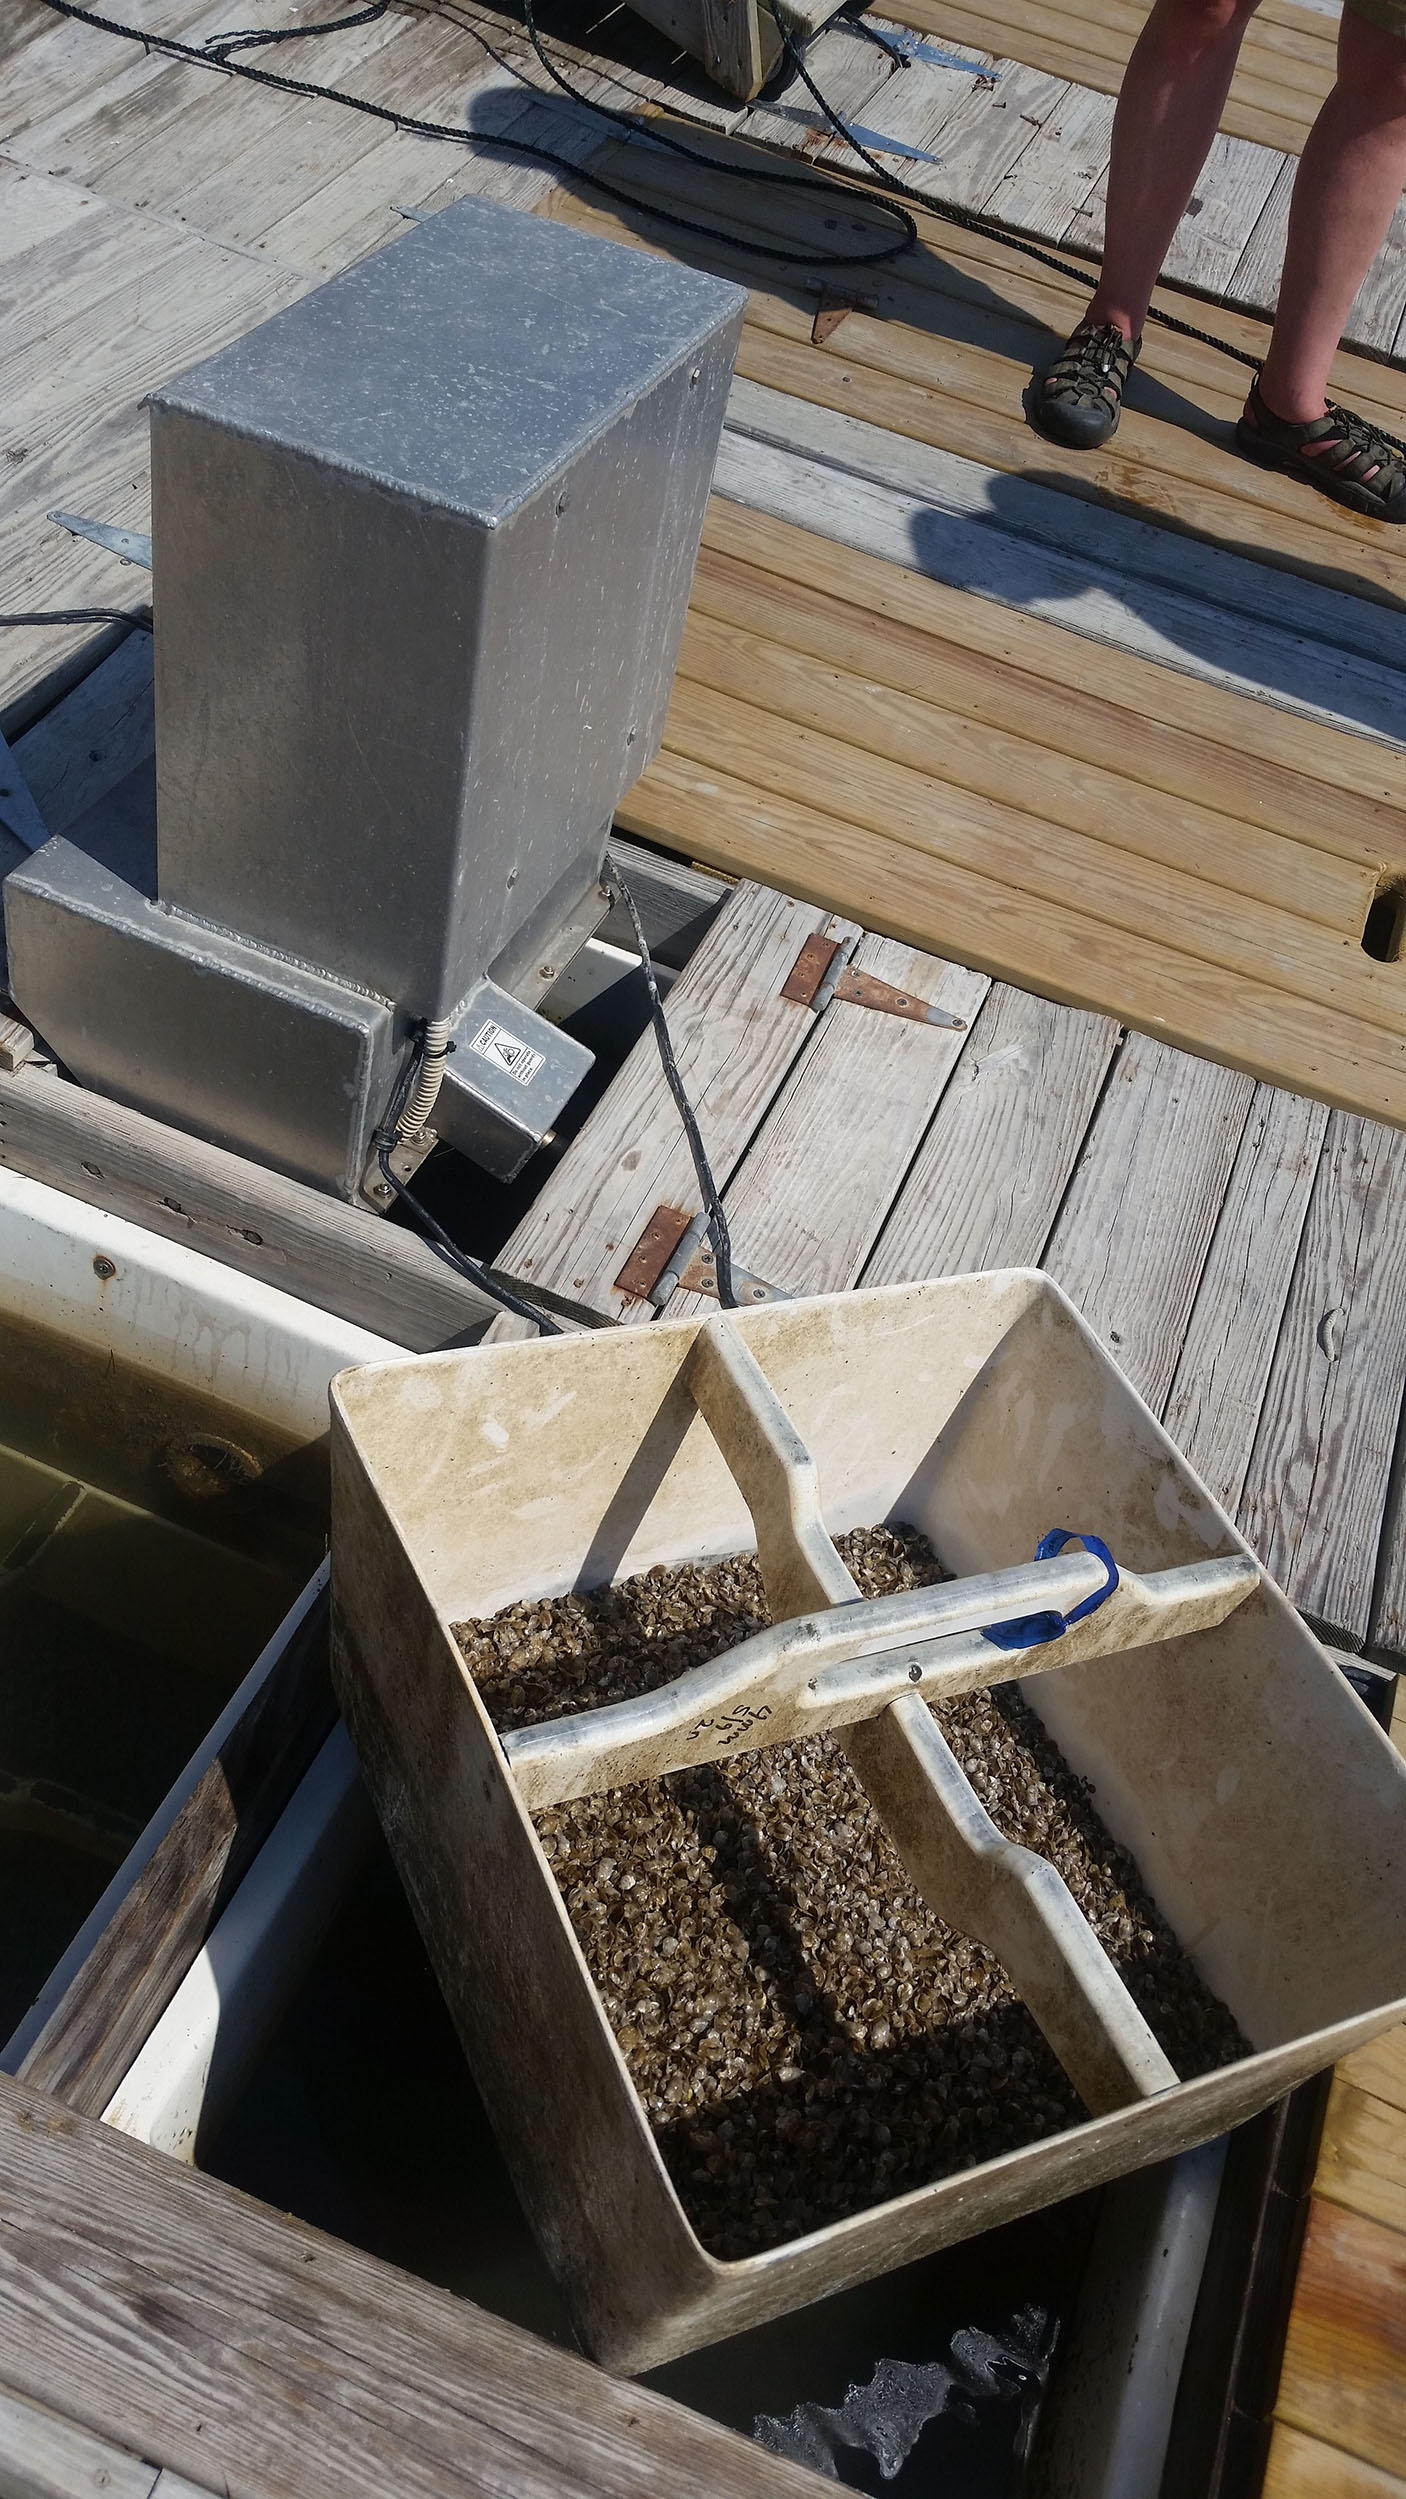 Juvenile oysters in floating upweller container